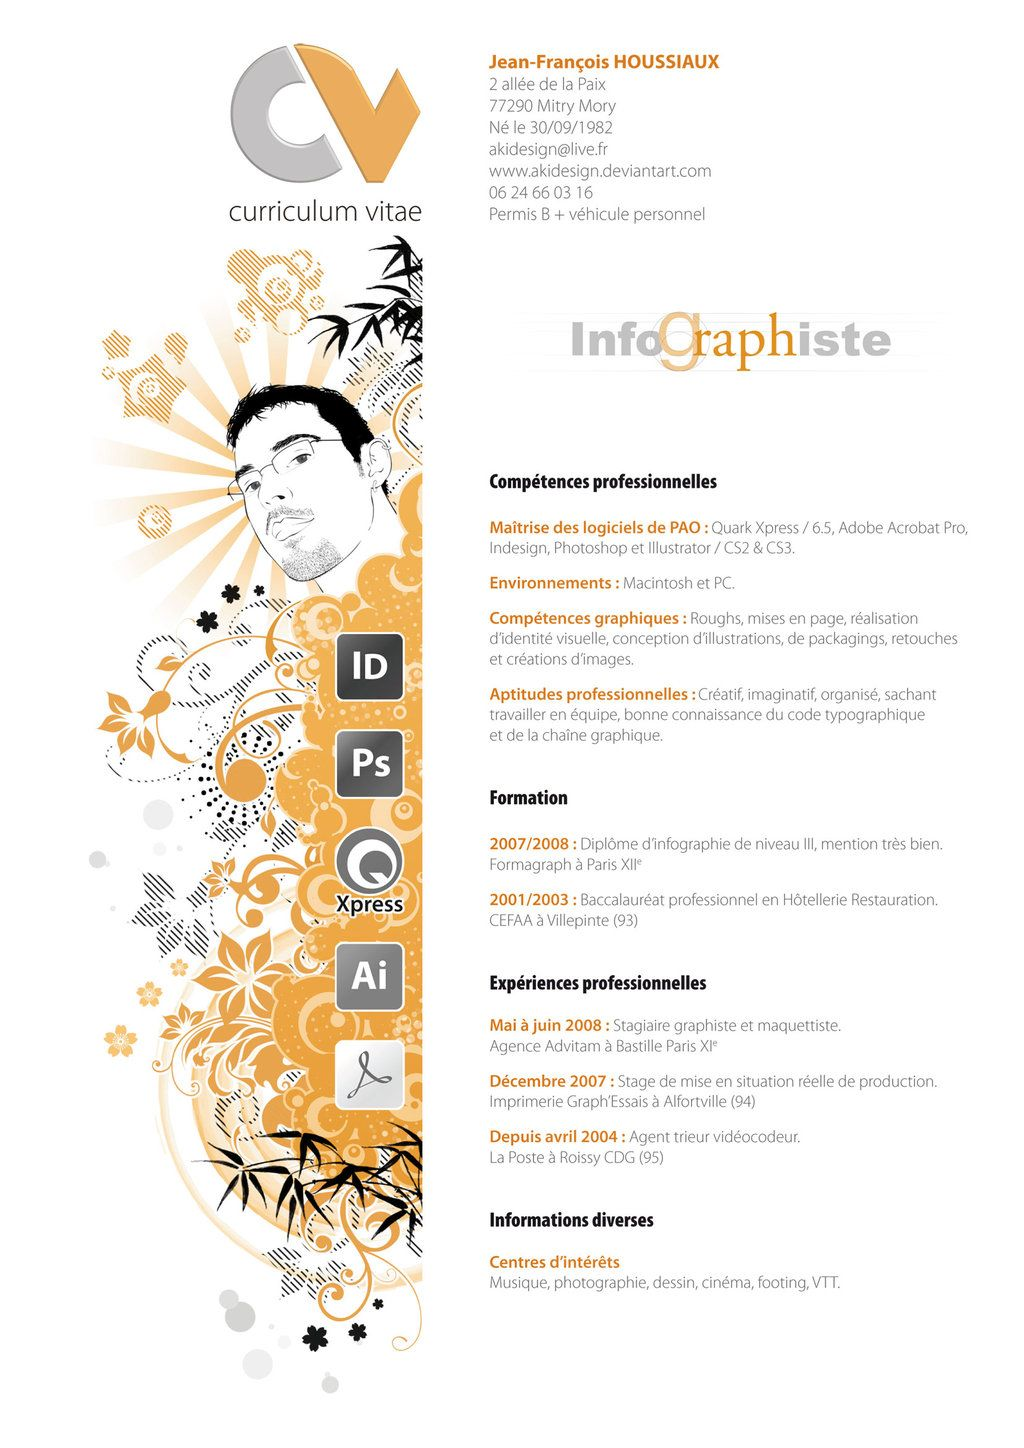 images about resumes on pinterest   resume  creative resume        images about resumes on pinterest   resume  creative resume and graphic design resume